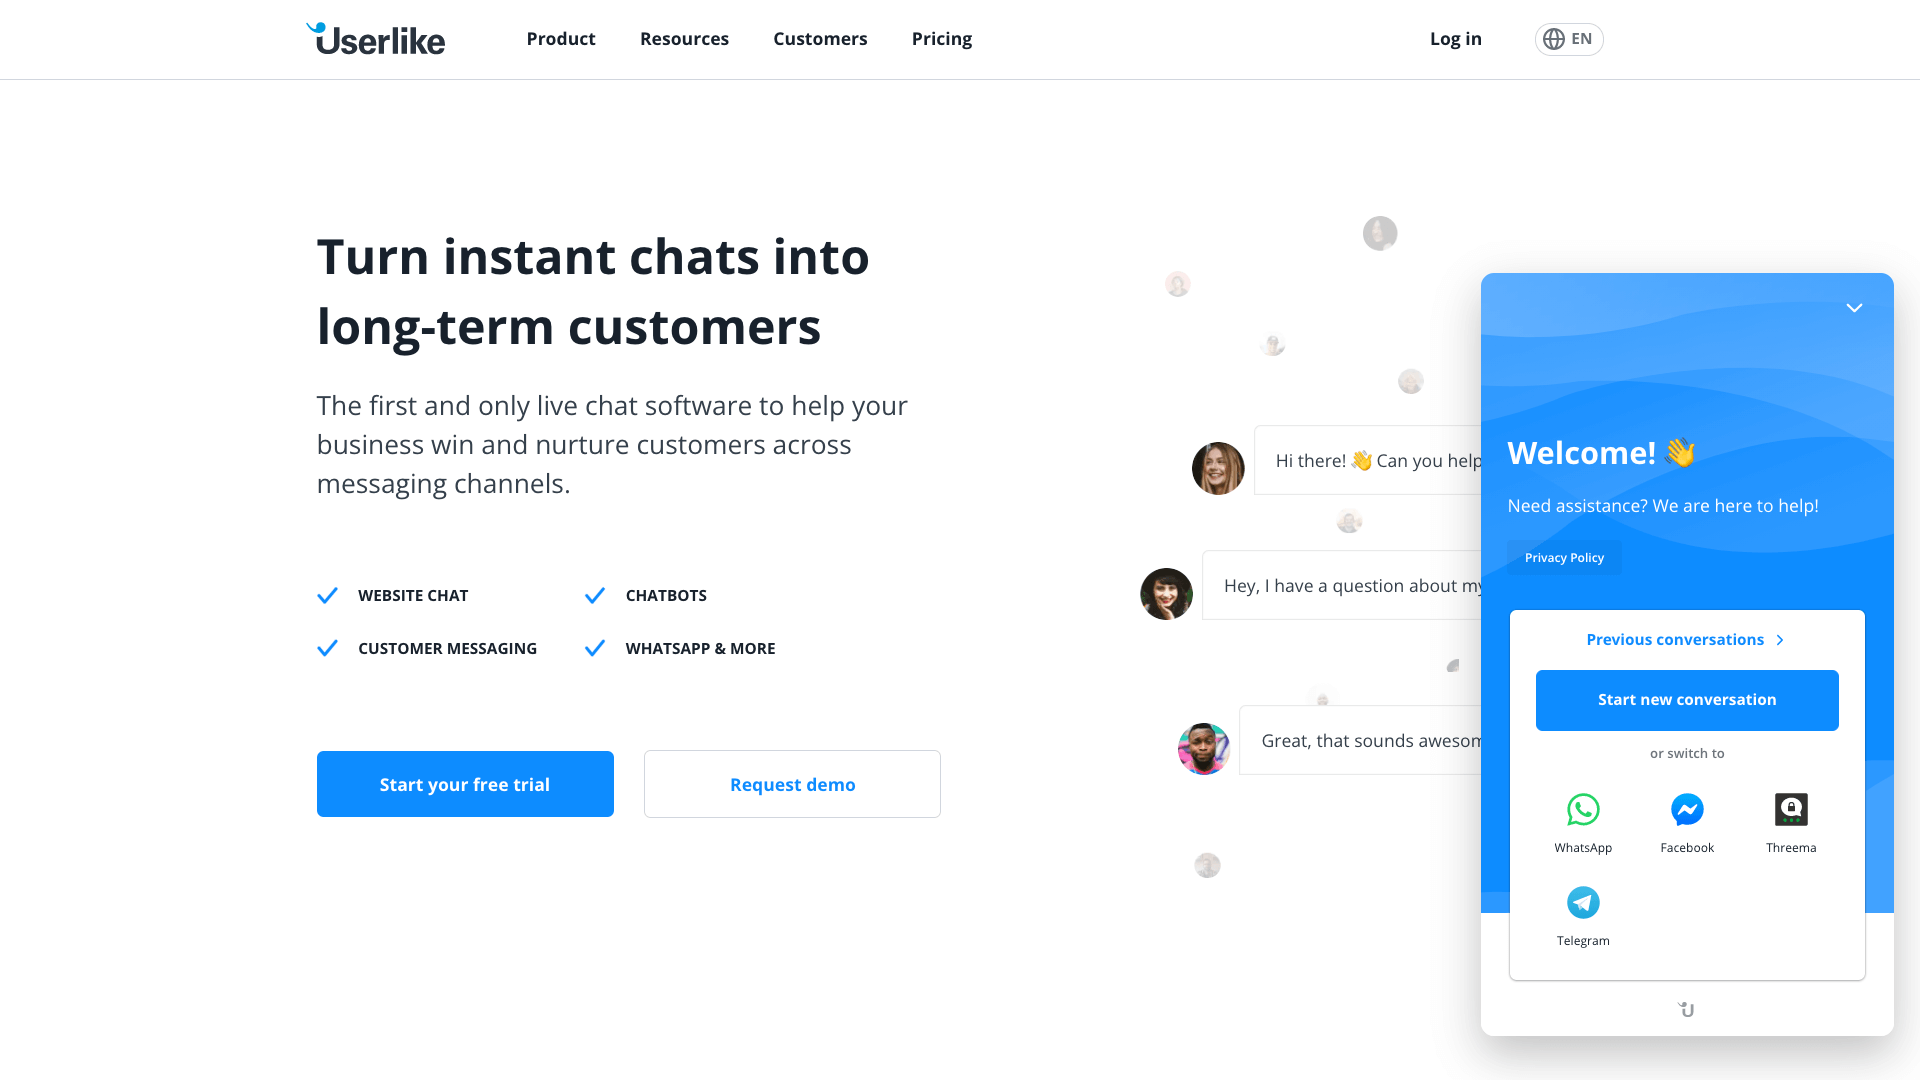 WhatsApp button and support chat by Userlike